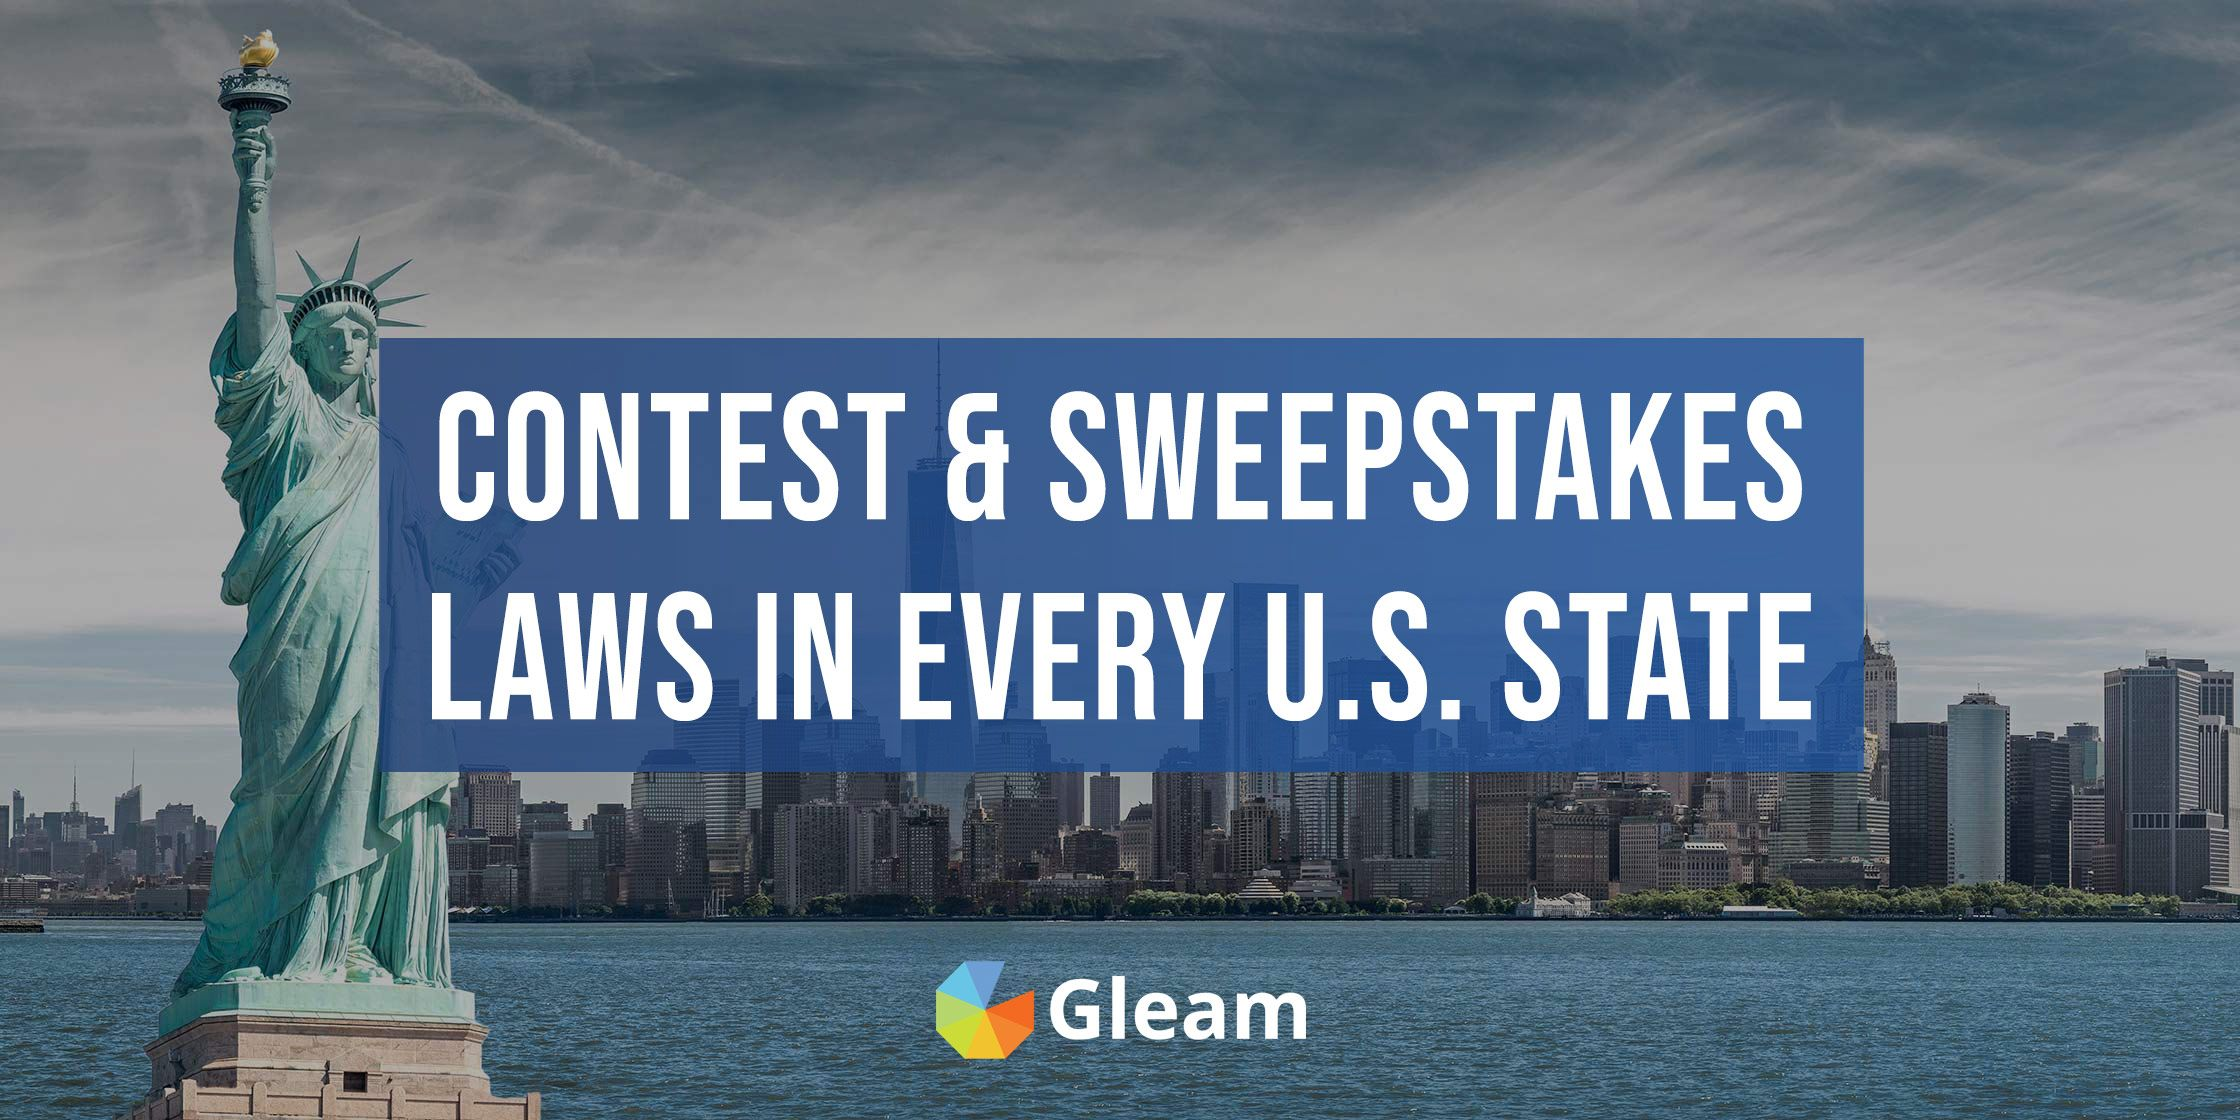 Contest & Sweepstakes Laws In Every U.S. State